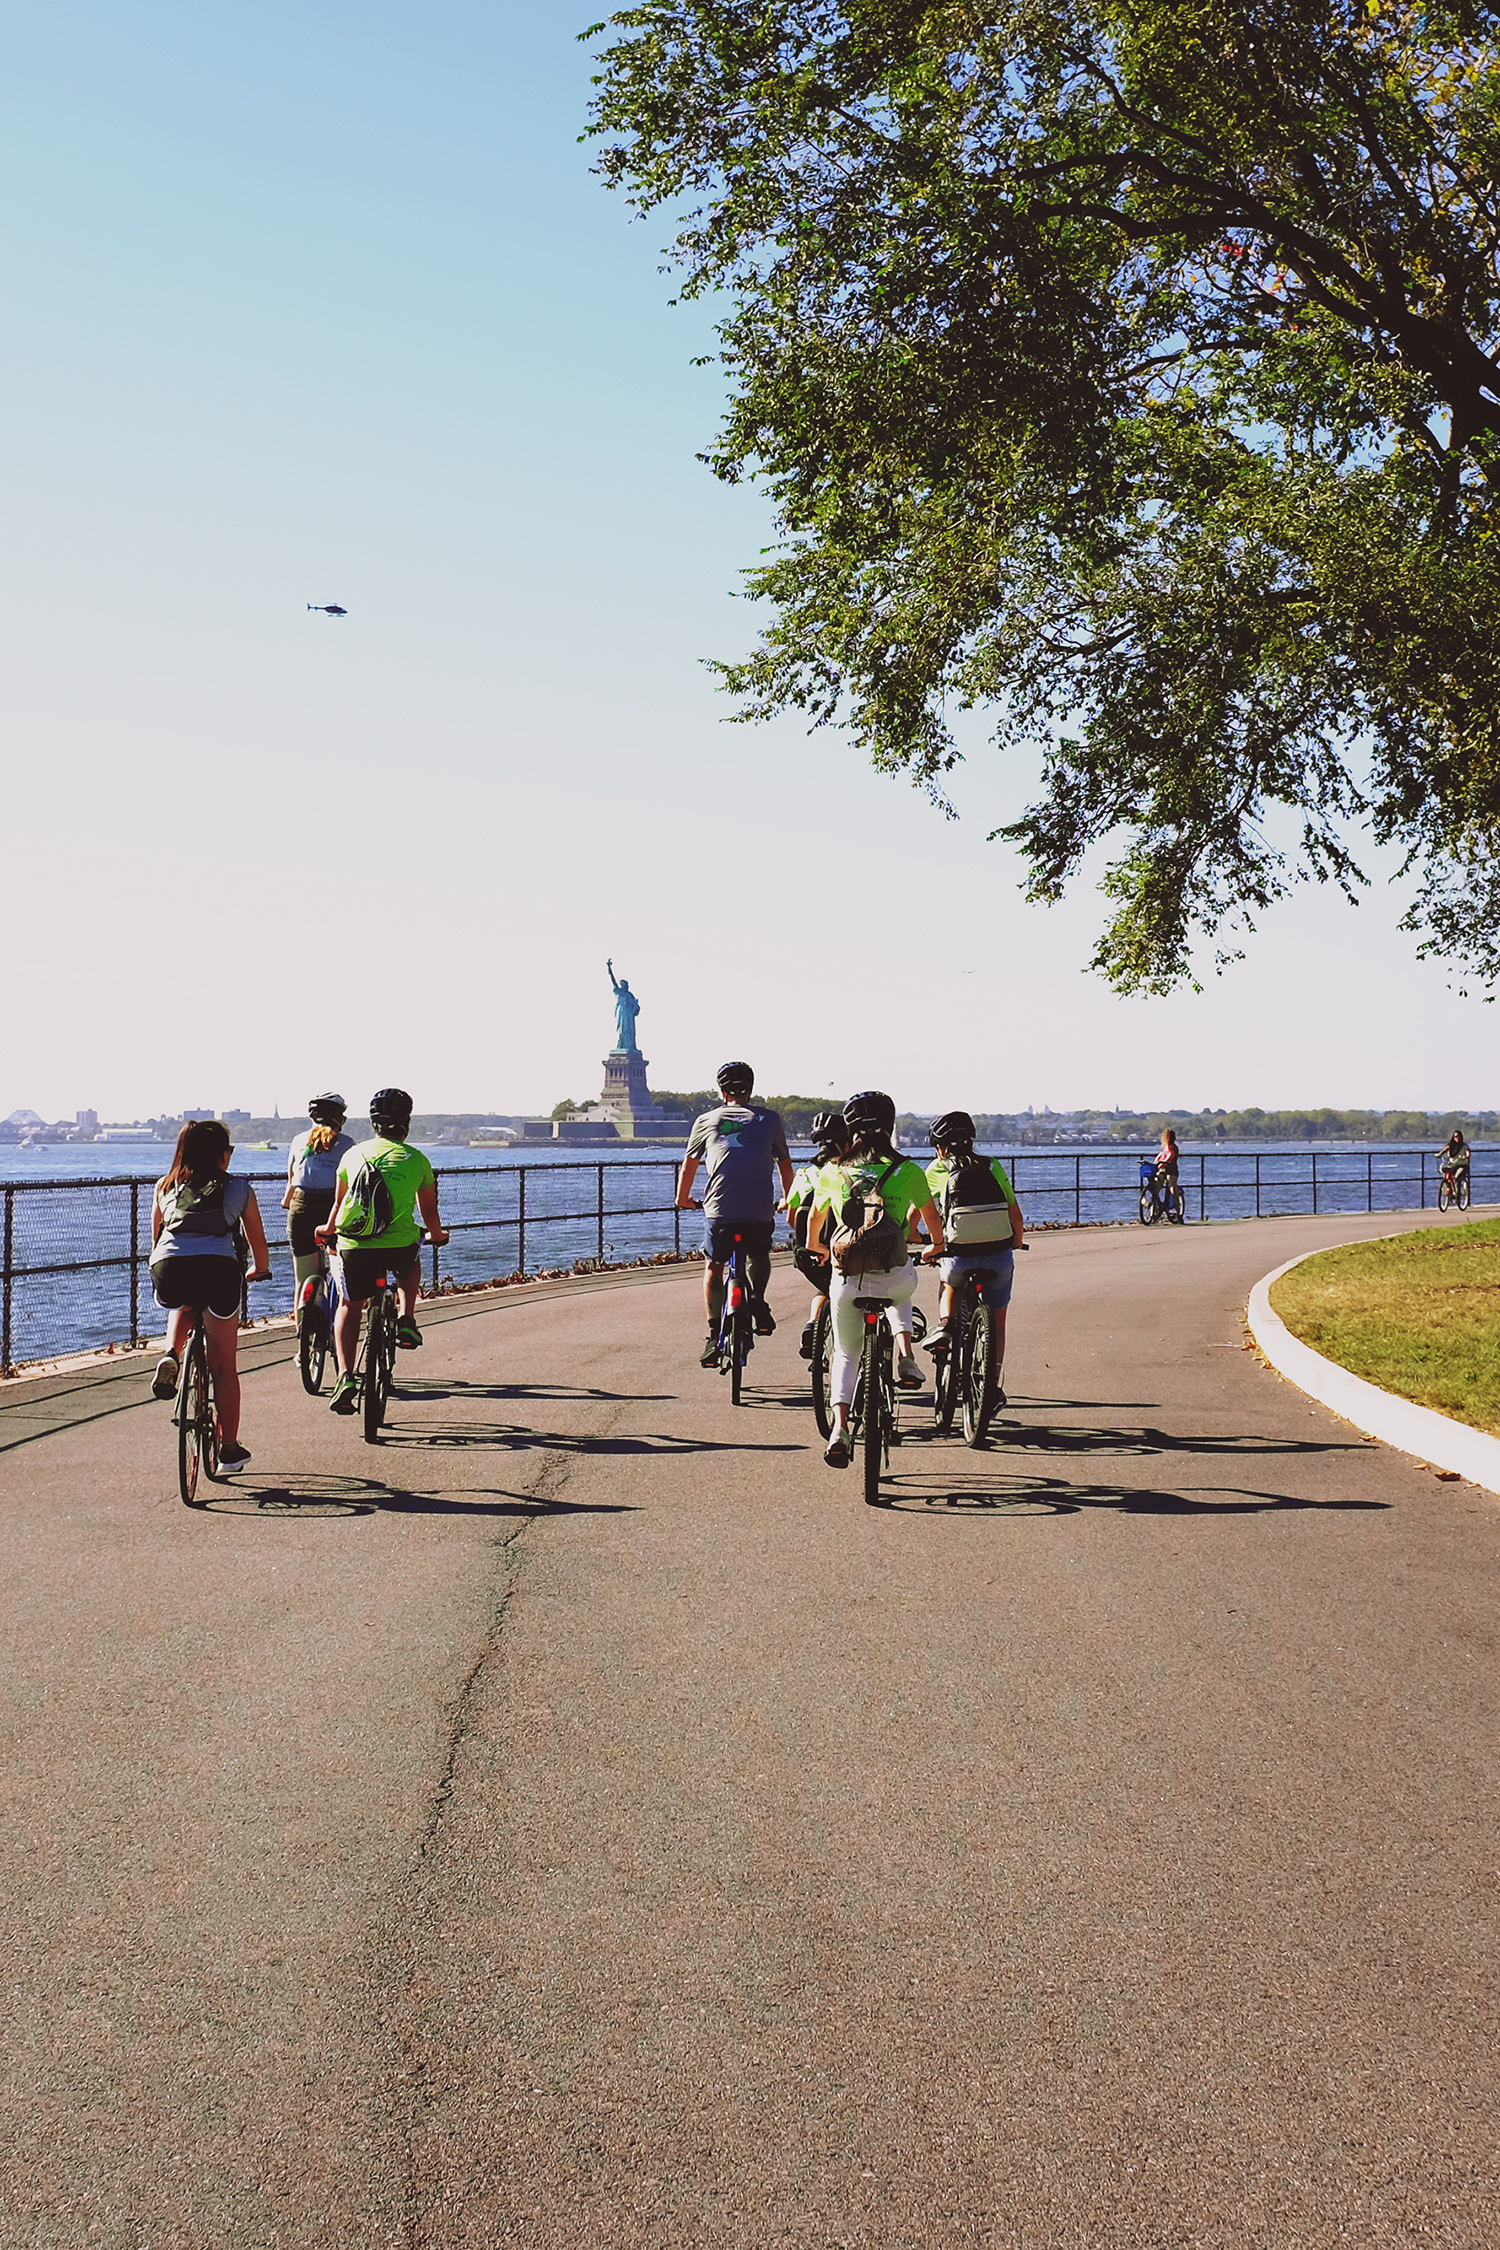 Our Mission - Provide youth with an outlet to have fun living healthy, active lives while simultaneously exploring their own paths of development through cycling, mentorship, experiences and nature.Learn More